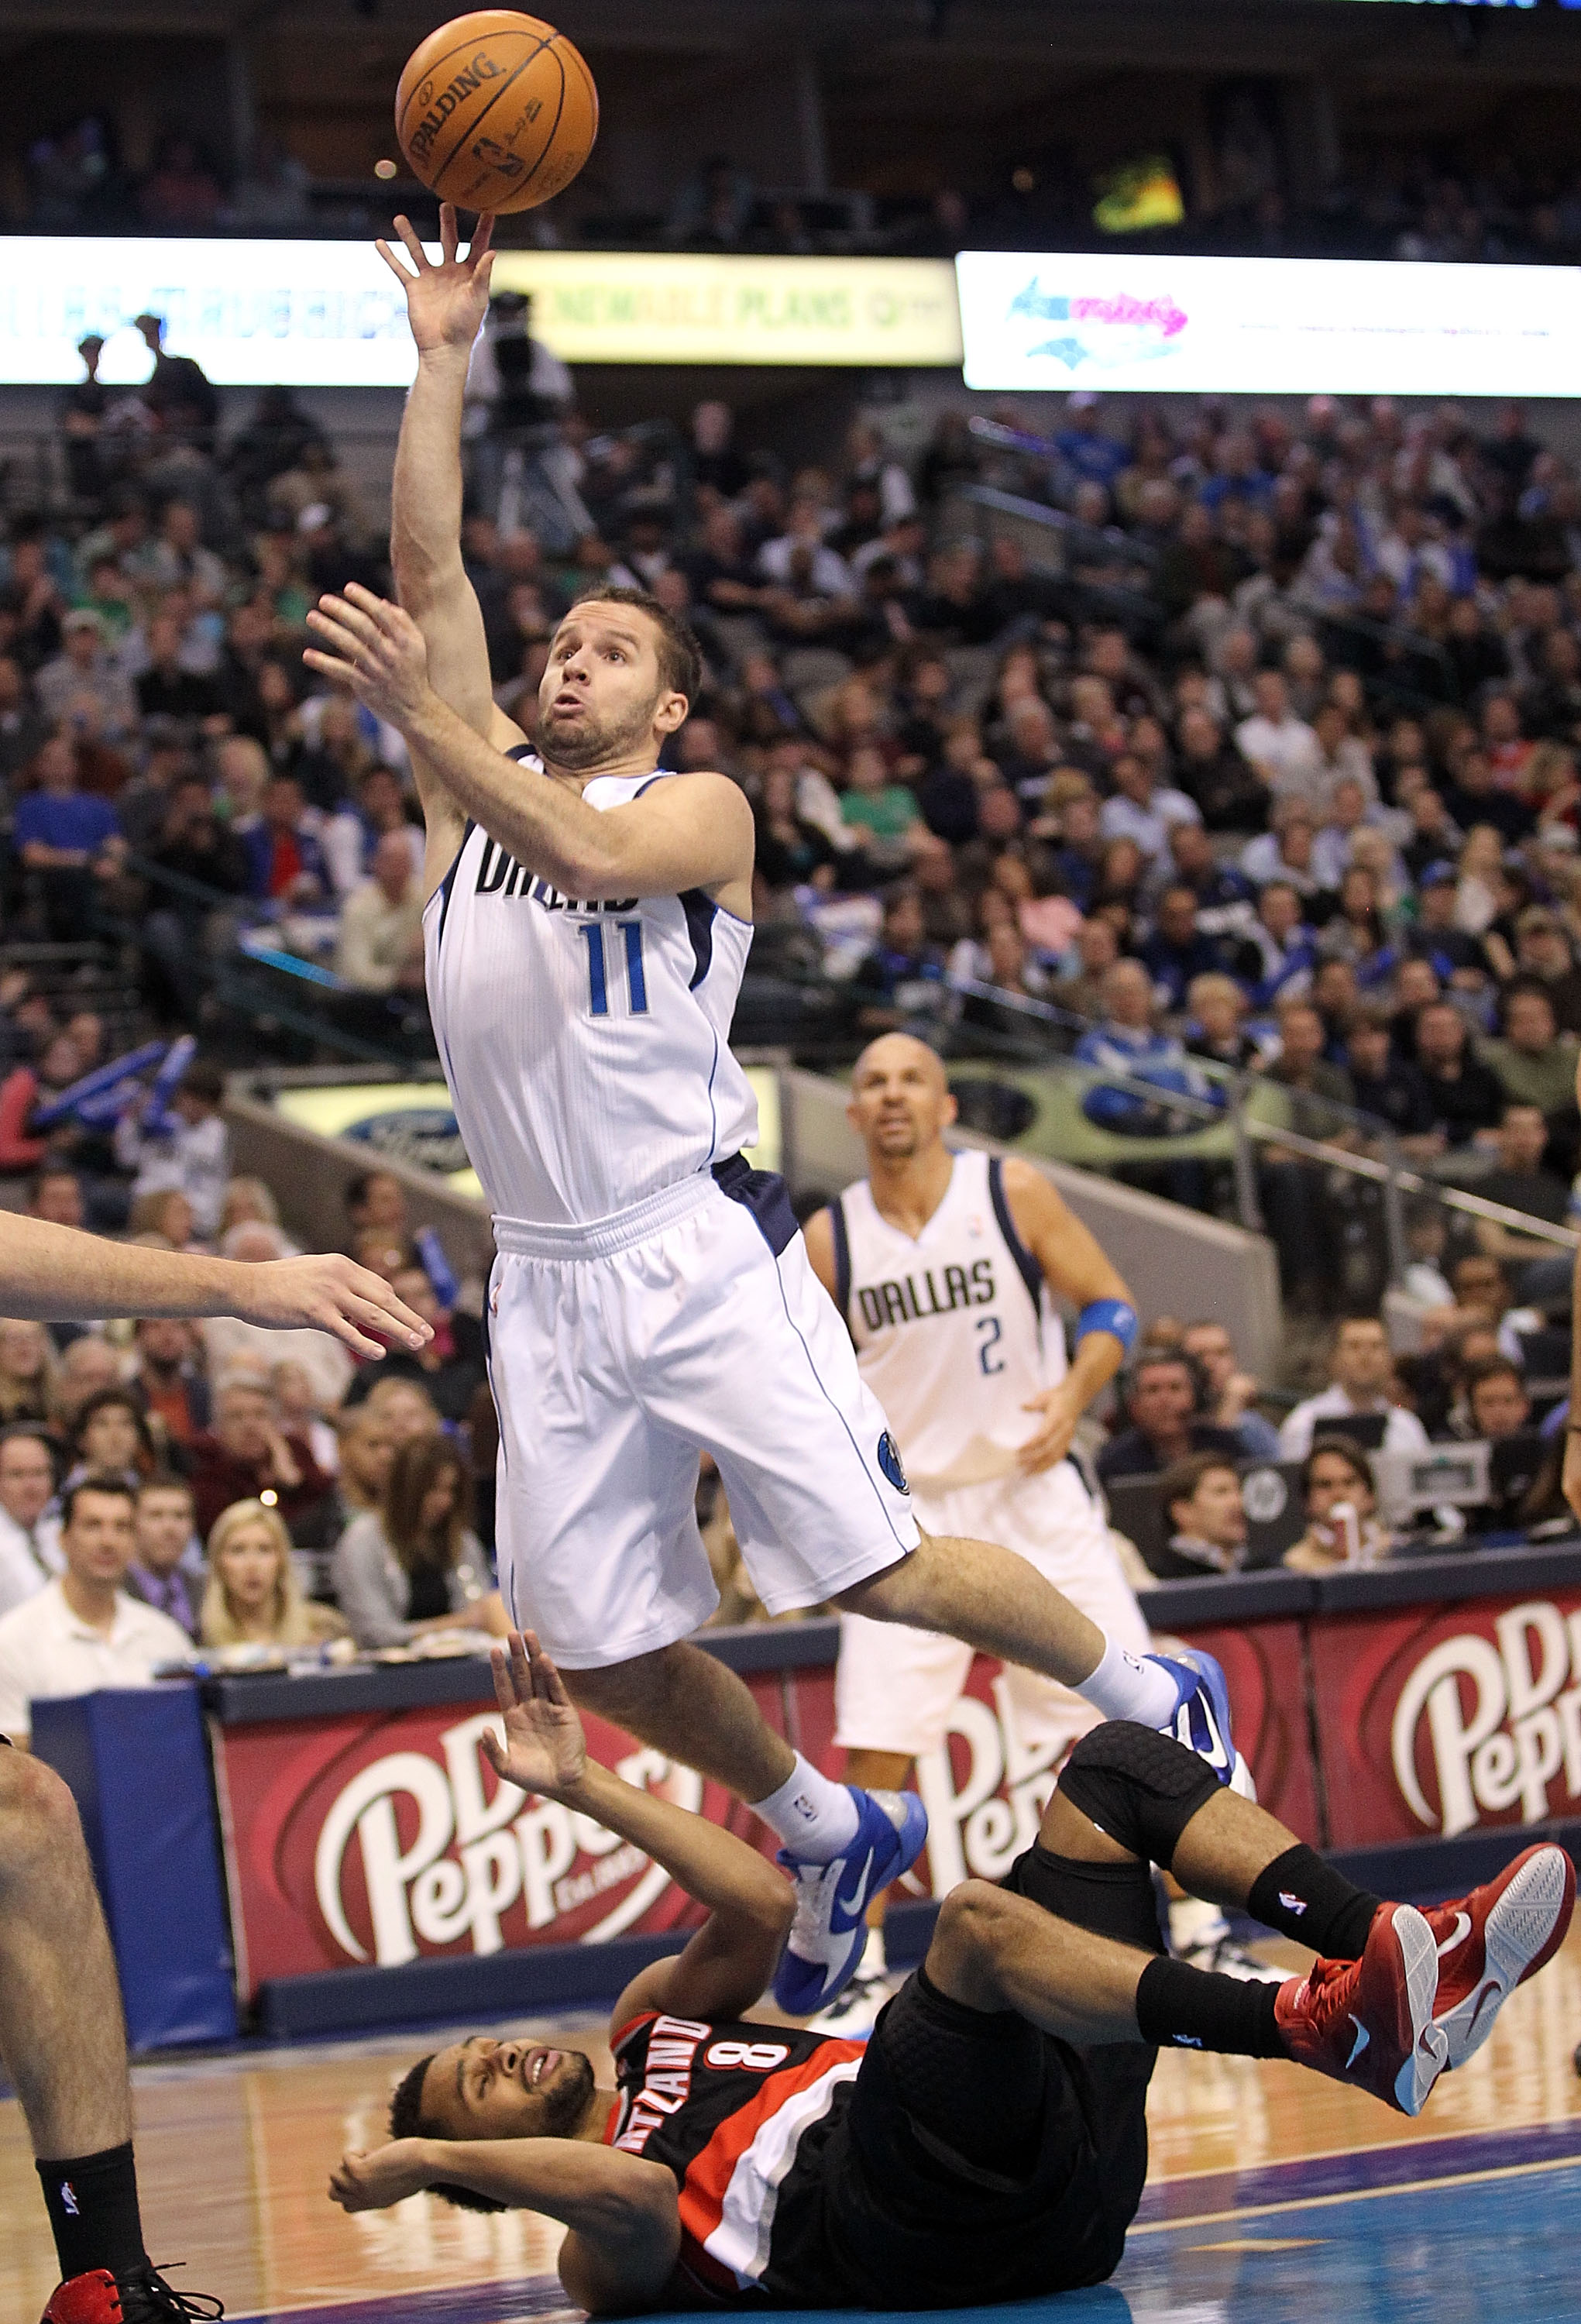 DALLAS, TX - JANUARY 04:  Guard Jose Juan Barea #11 of the Dallas Mavericks takes a shot against Patrick Mills #8 of the Portland Trail Blazers at American Airlines Center on January 4, 2011 in Dallas, Texas.  NOTE TO USER: User expressly acknowledges and